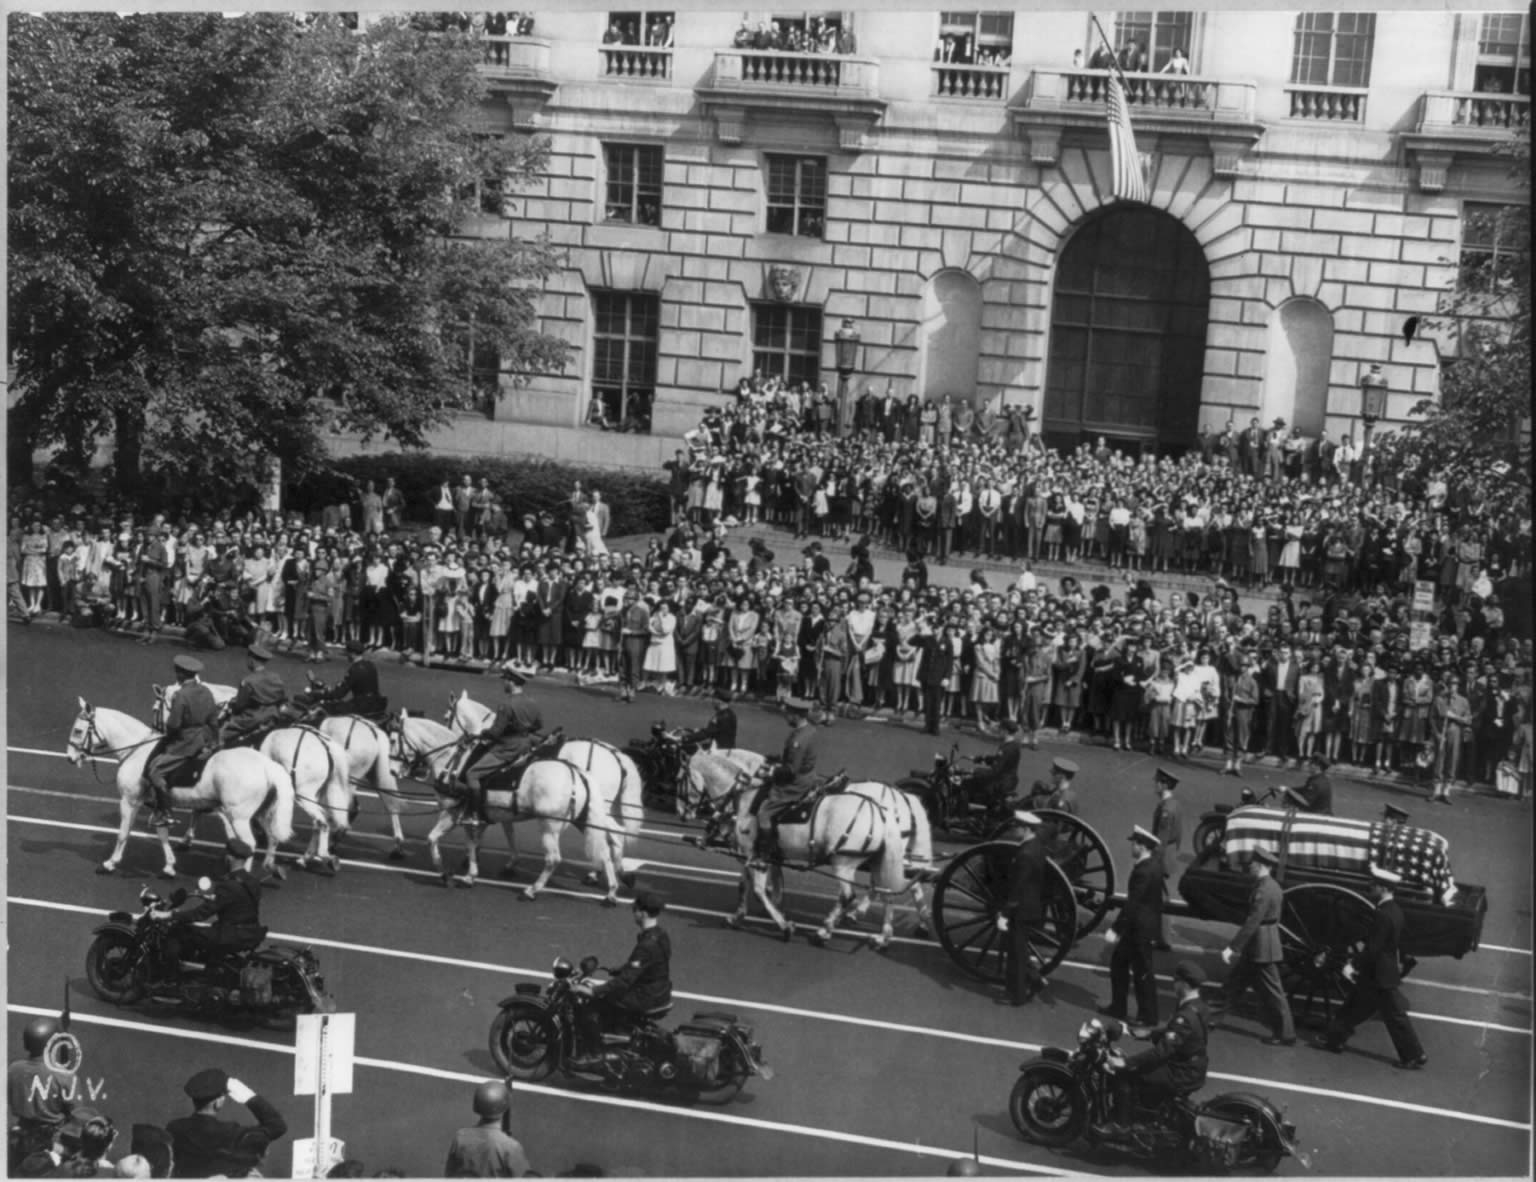 Franklin Delano Roosevelt's funeral procession with horse-drawn casket, Pennsylvania Avenue, Washington, D.C., watched by 300,000 spectators on April 14, 1945.